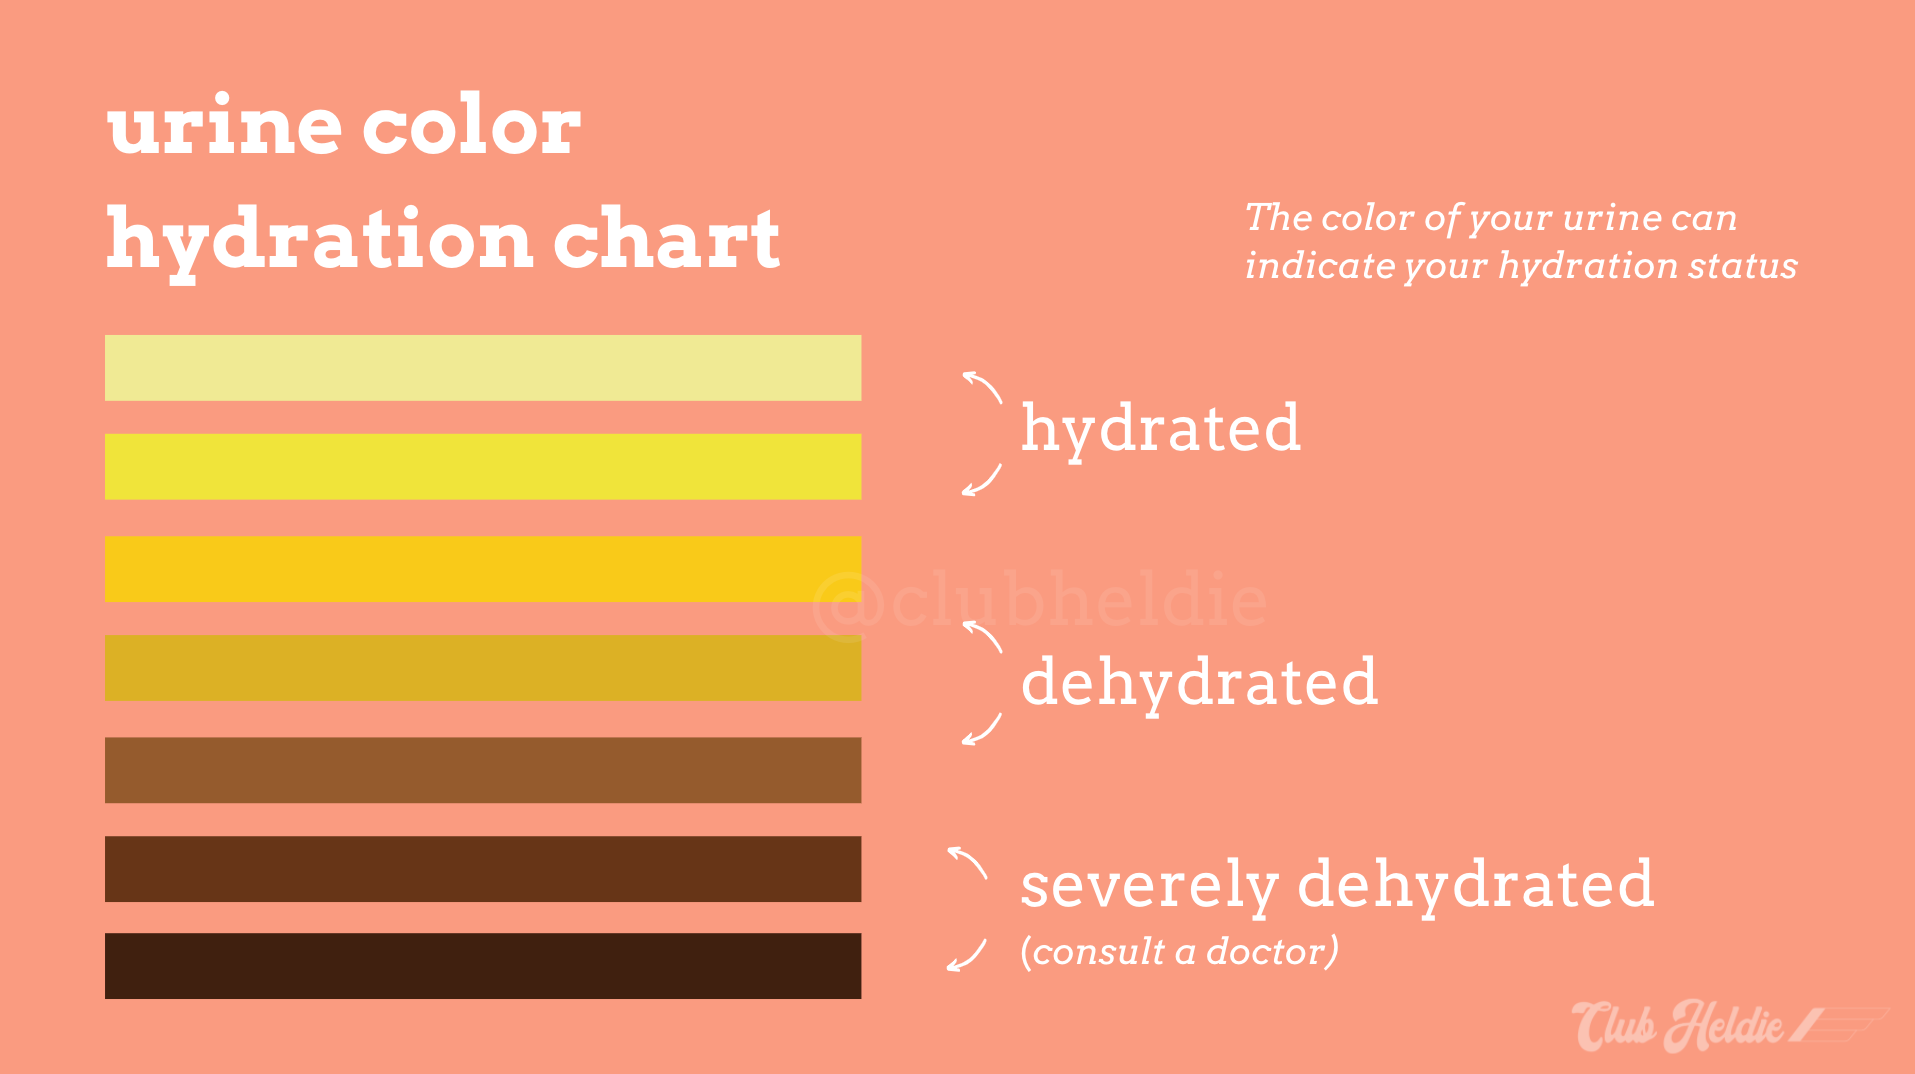 urine color hydration chart for runners